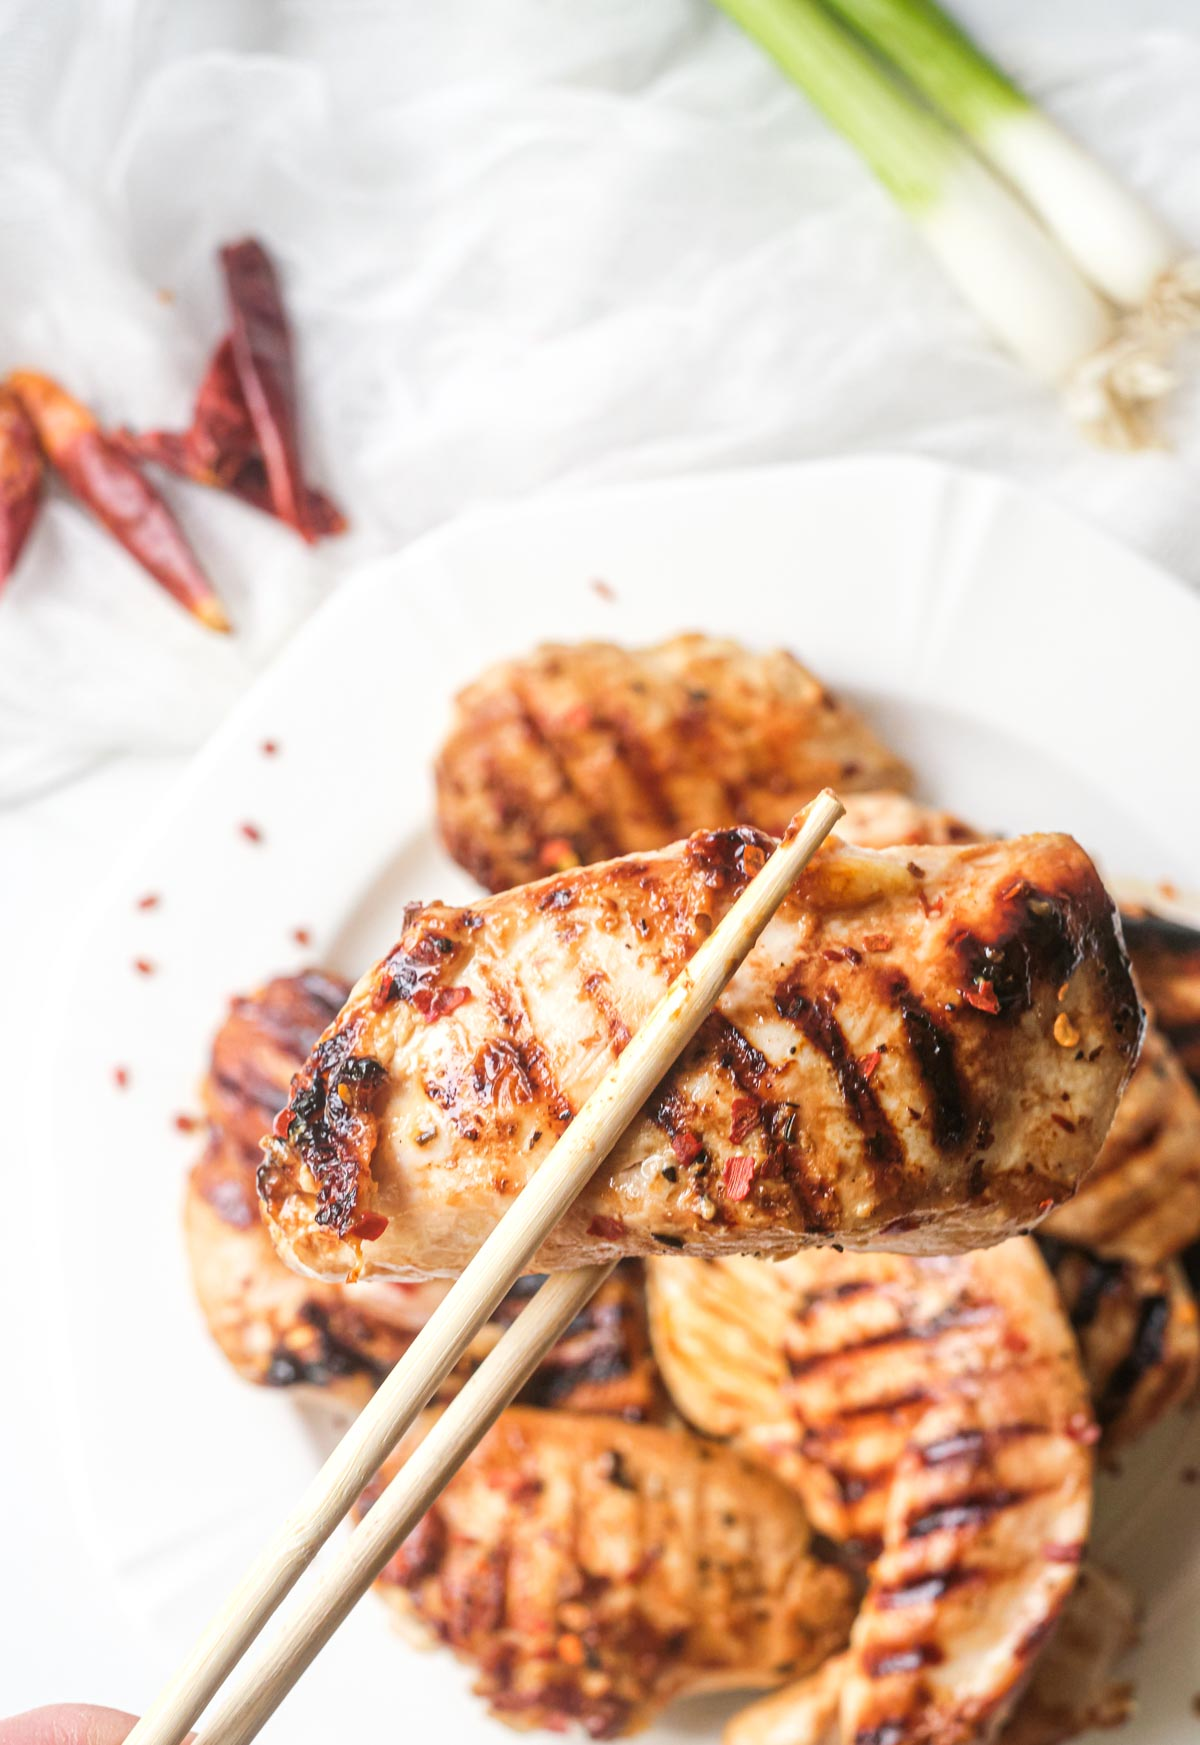 one of the Asian grilled chicken tenders being picked up with chopsticks